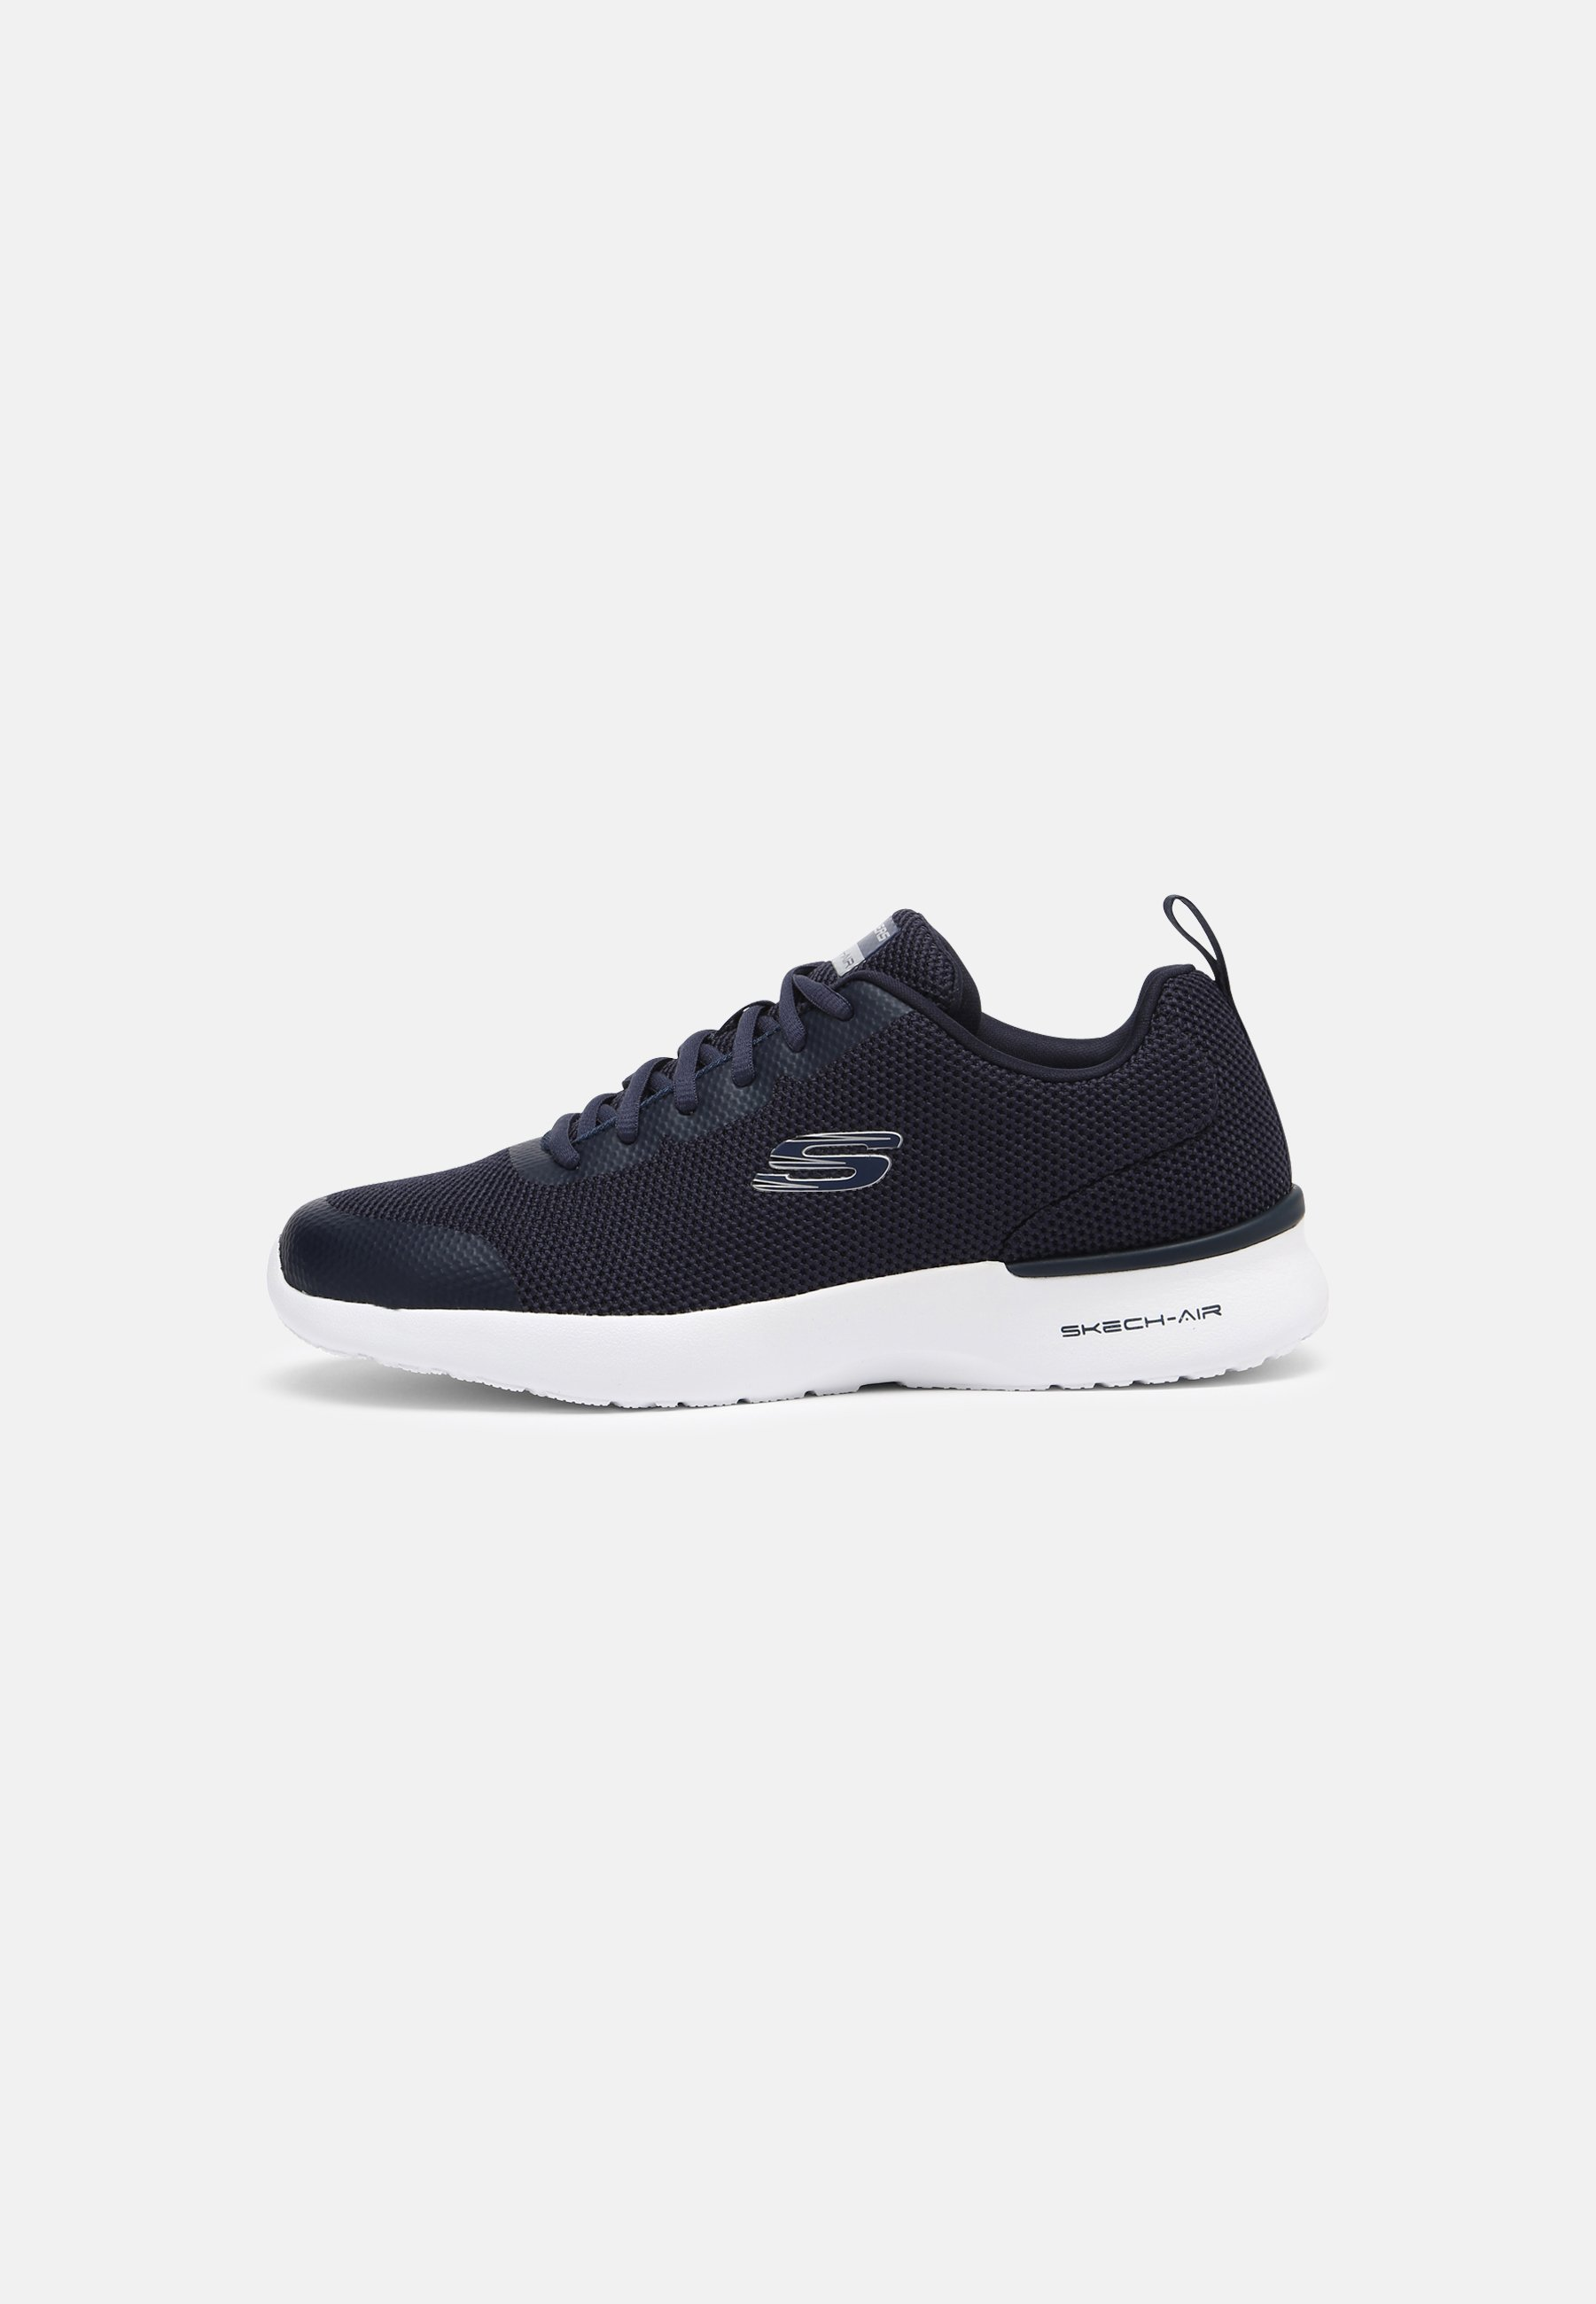 Homme SKECH-AIR DYNAMIGHT WINLY - Baskets basses